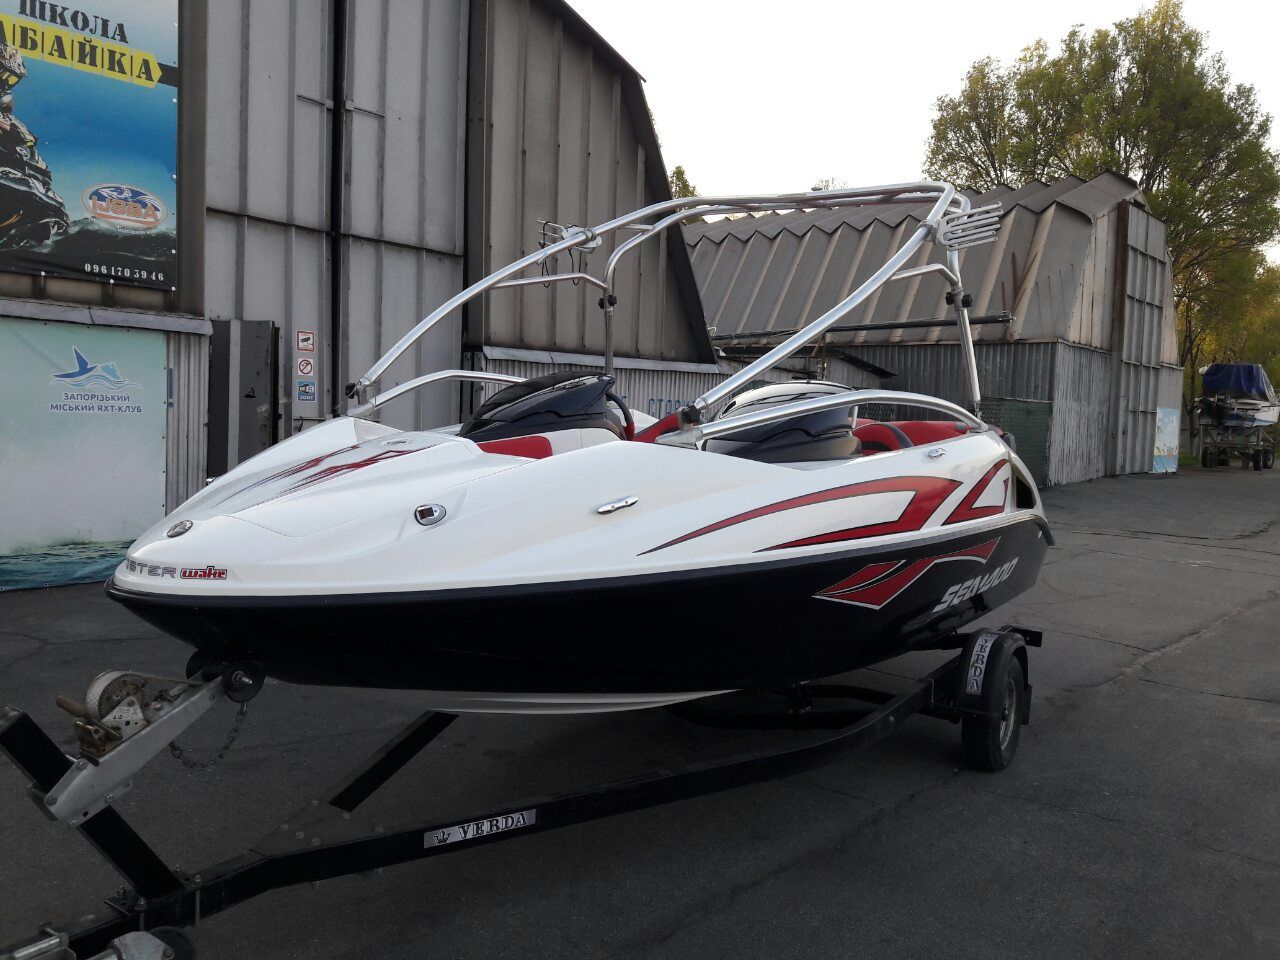 BRP Sea Doo speedster 600 tunning